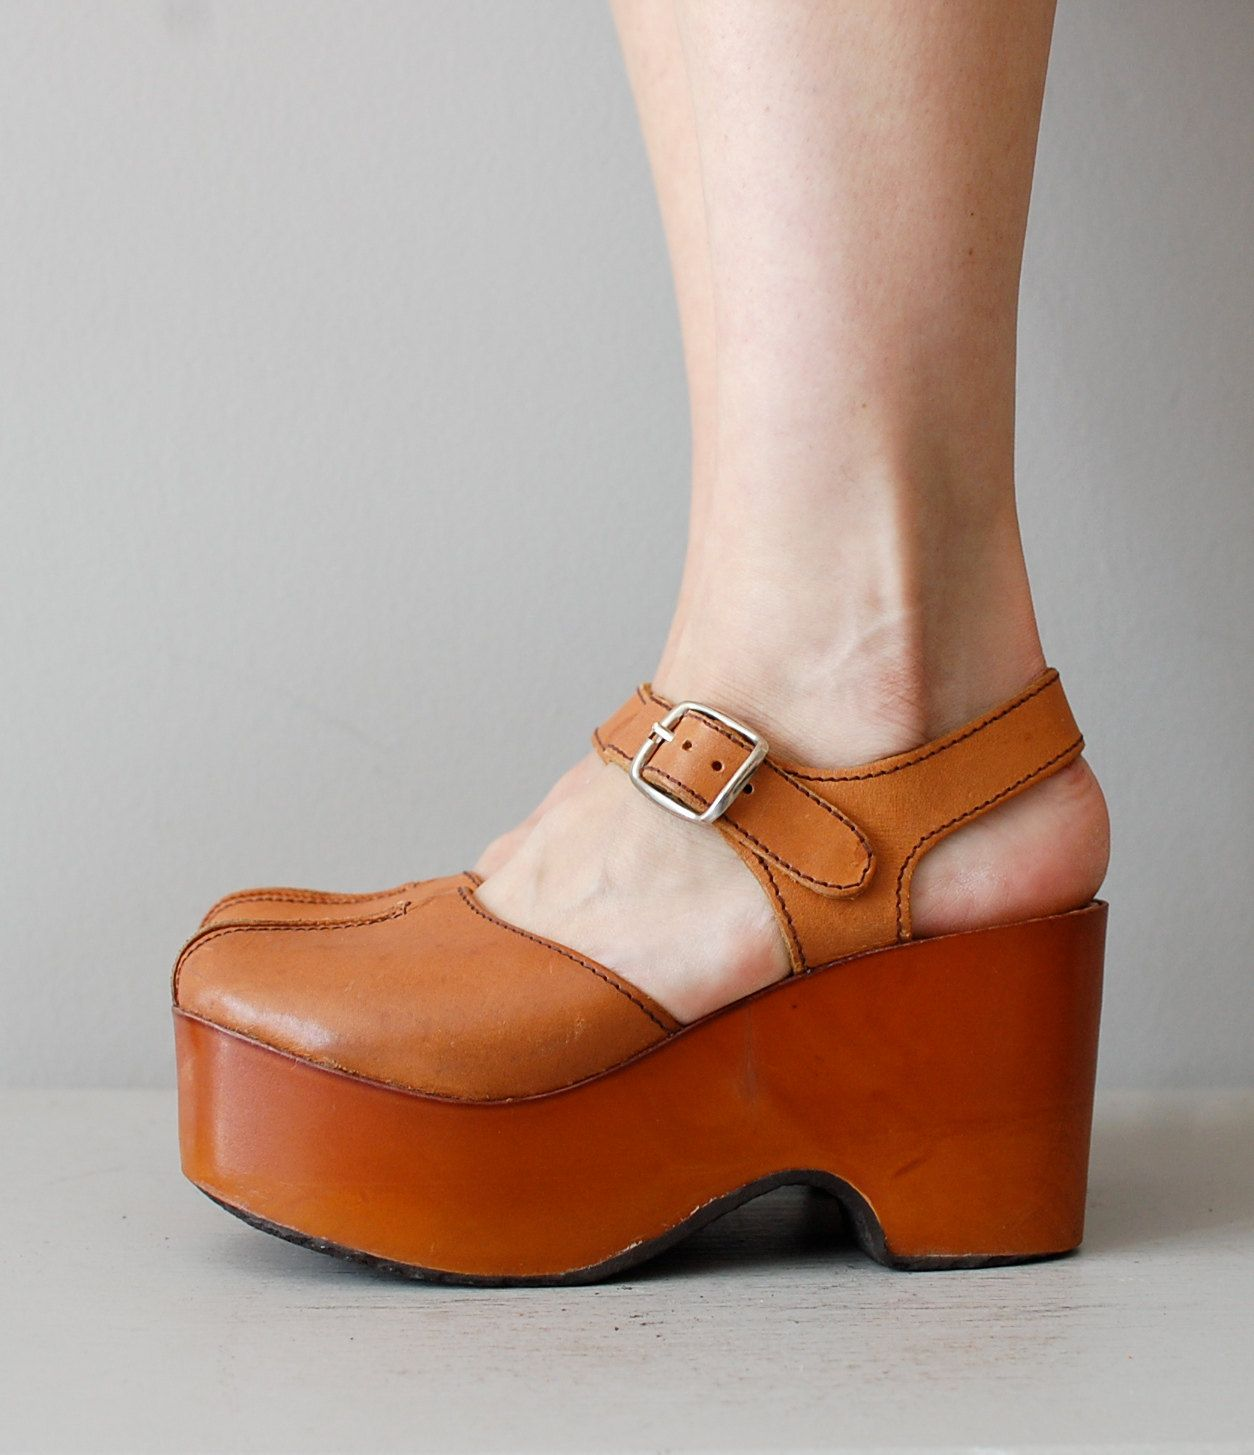 50e2168ebc96 platform shoes   1970s wooden platforms   Platform Mary Janes.  225.00